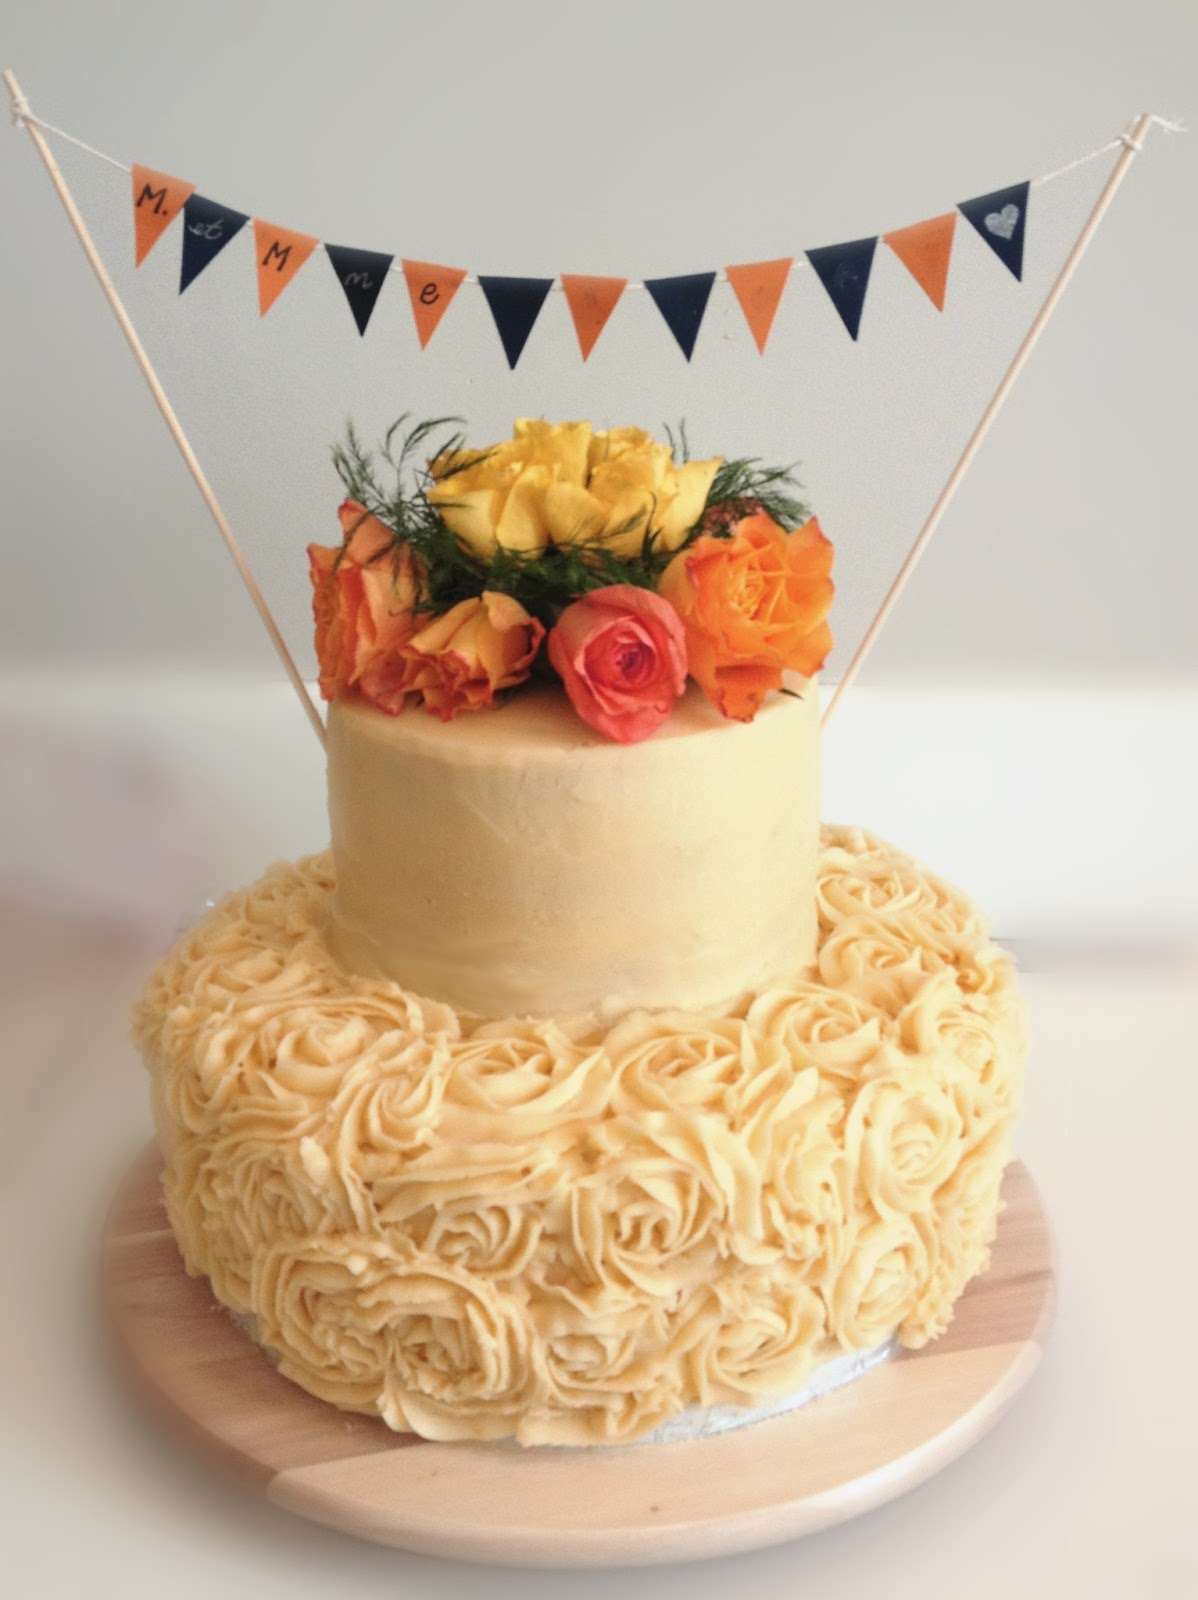 Sweetopie: Carrot Cake with Ginger Orange Frosting